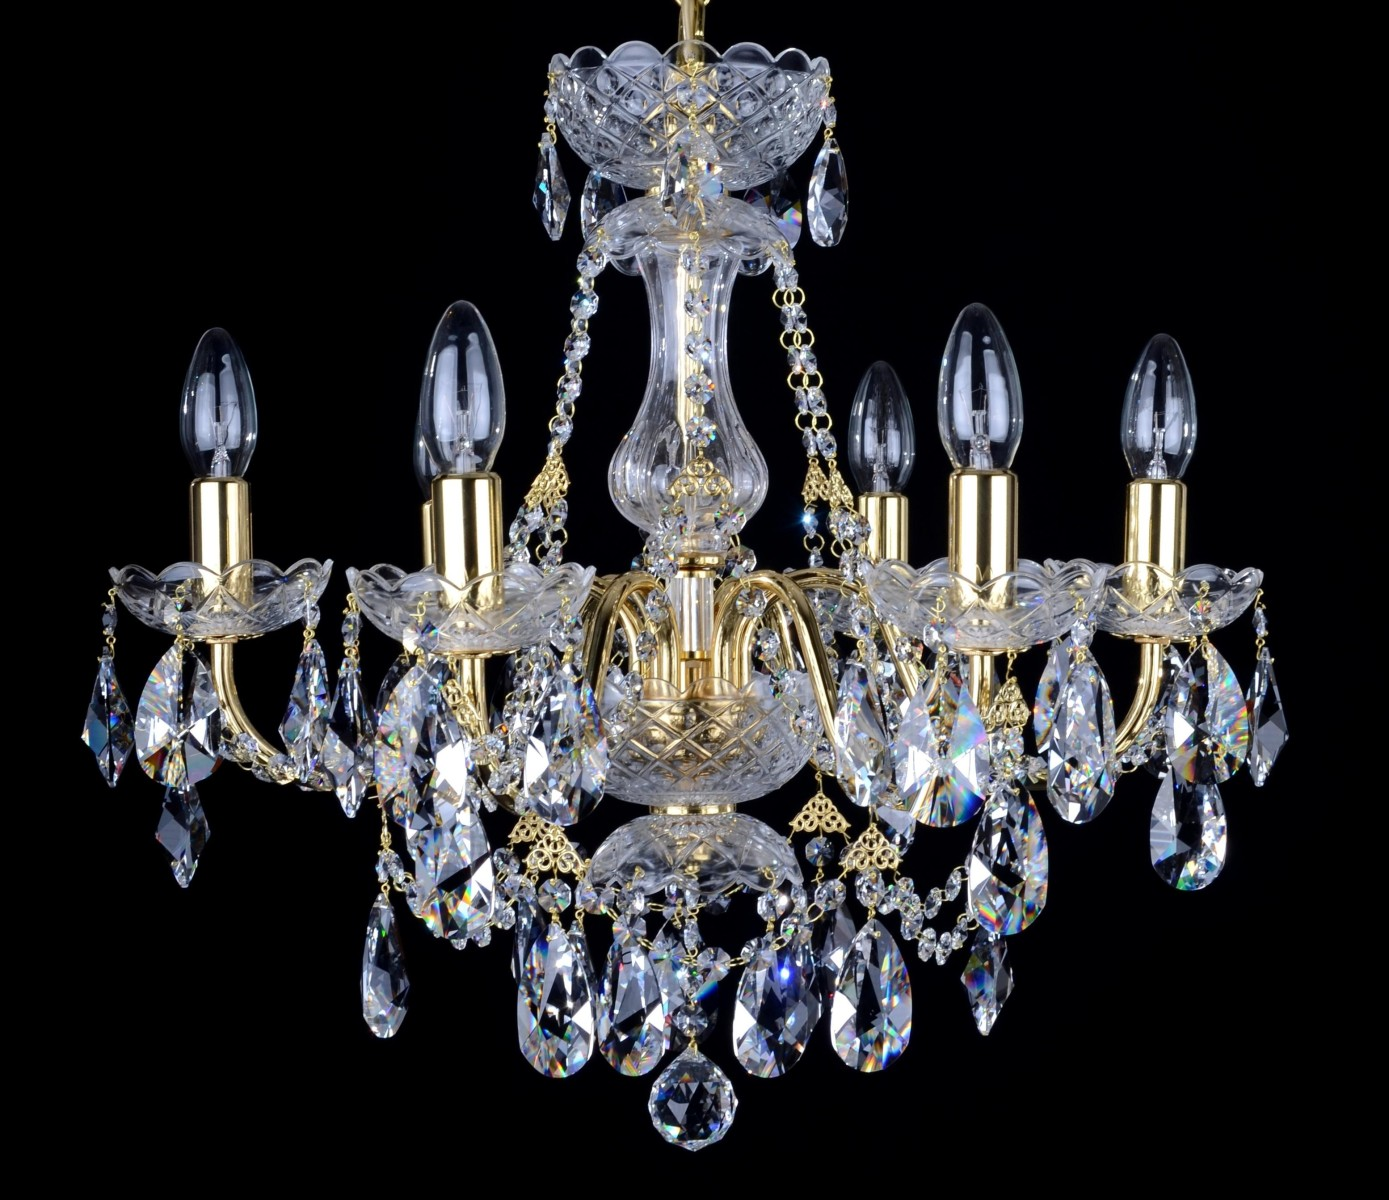 6 Arms Gold Brass Crystal Chandelier With Swarovski Crystal Almonds Bohemian Glass